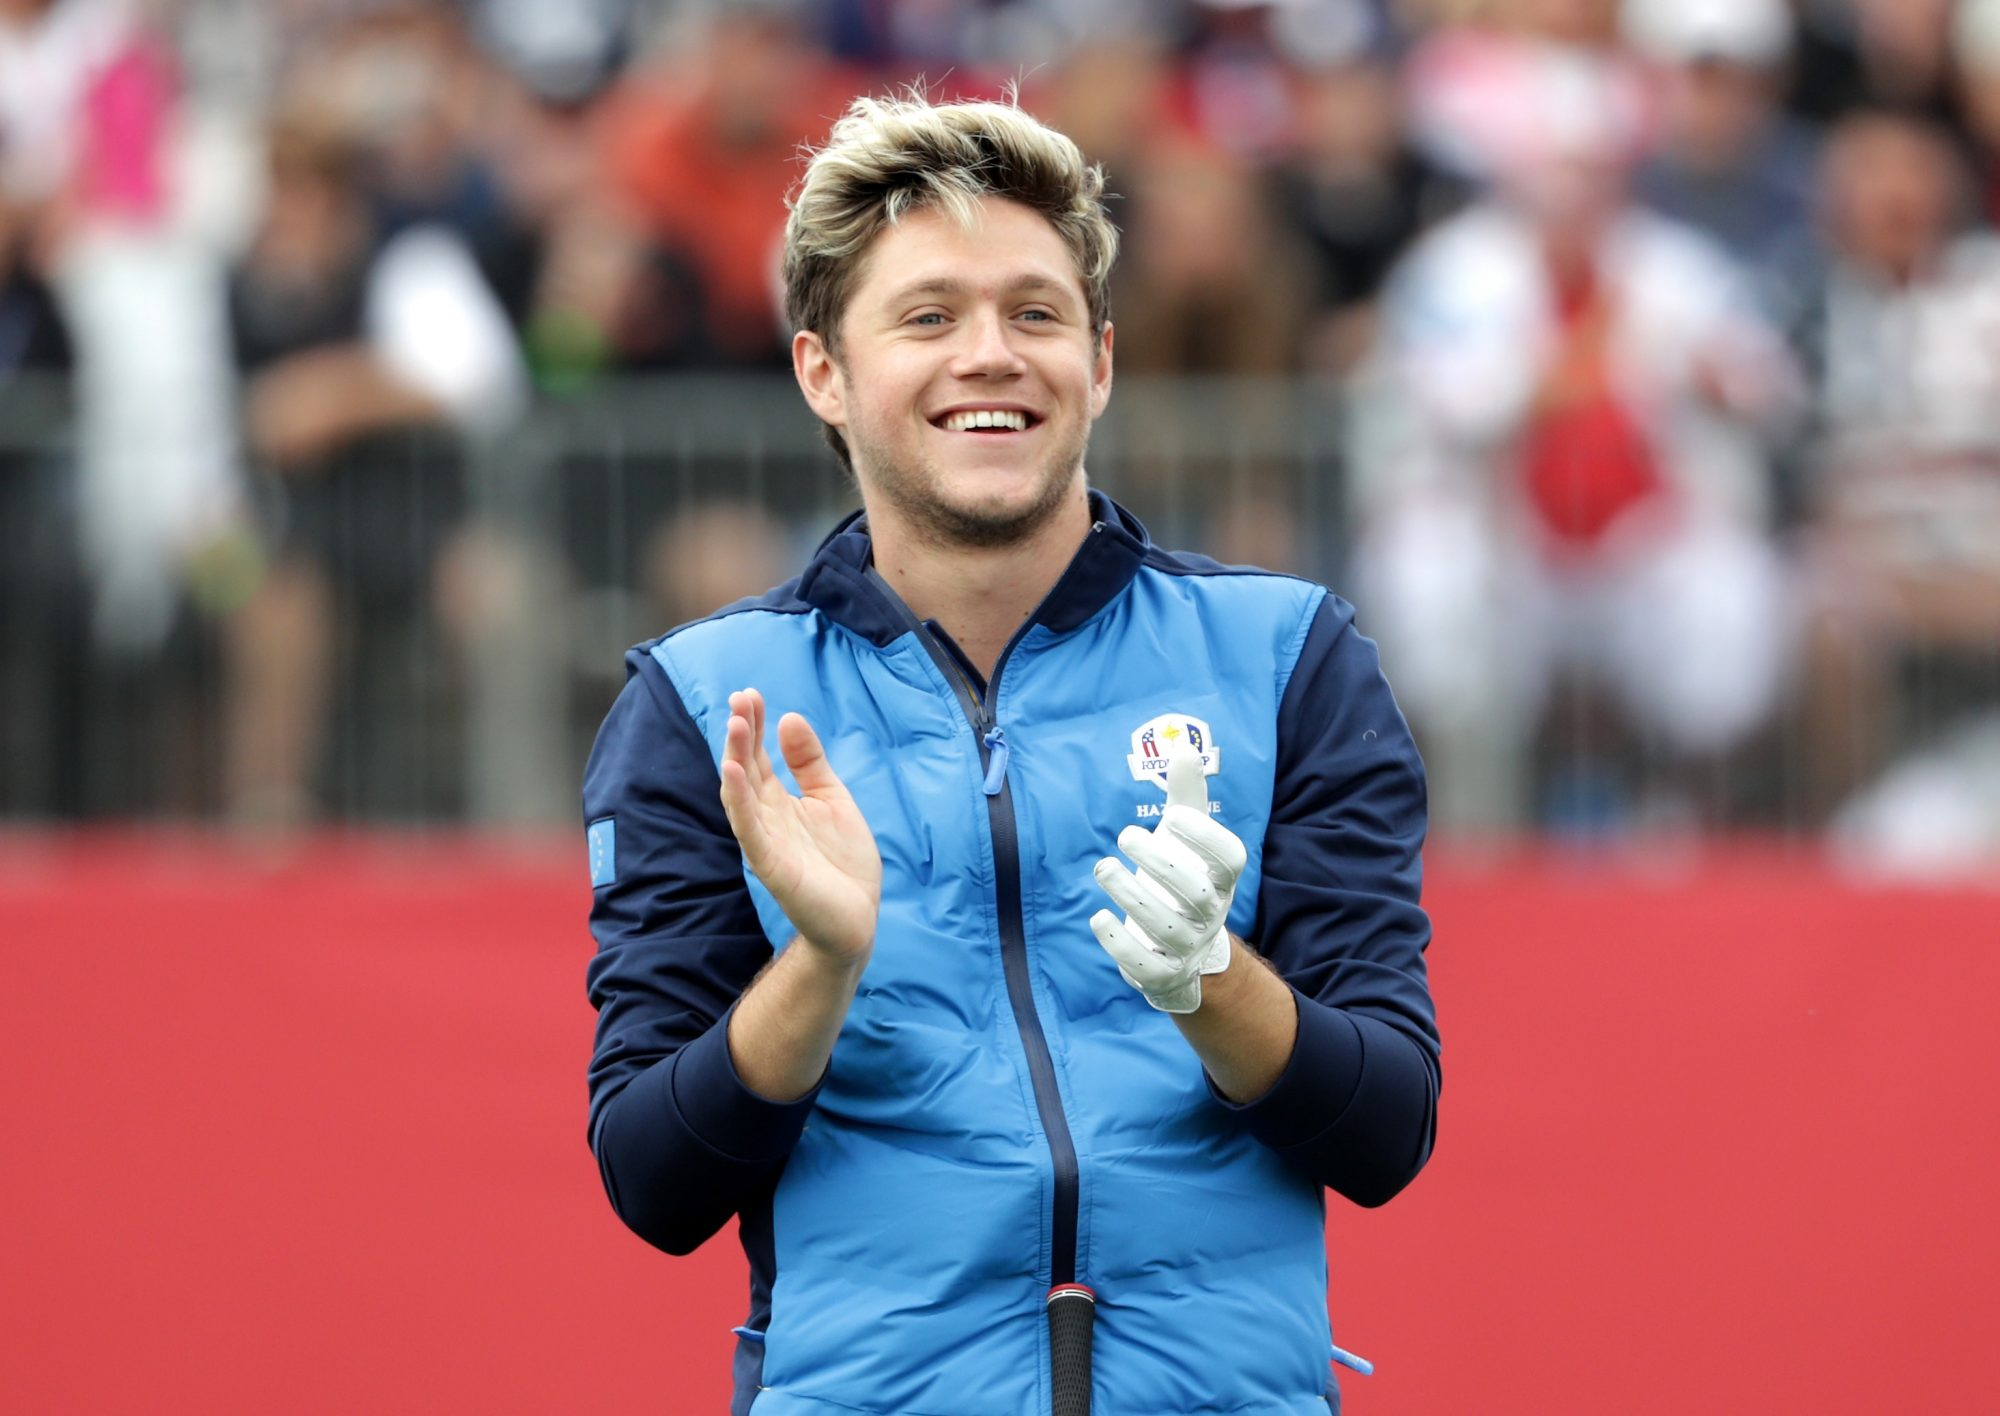 CHASKA, MN - SEPTEMBER 27:  Singer Niall Horan of Europe prepares to hit off the first tee during the 2016 Ryder Cup Celebrity Matches at Hazeltine National Golf Club on September 27, 2016 in Chaska, Minnesota.  (Photo by Streeter Lecka/Getty Images)